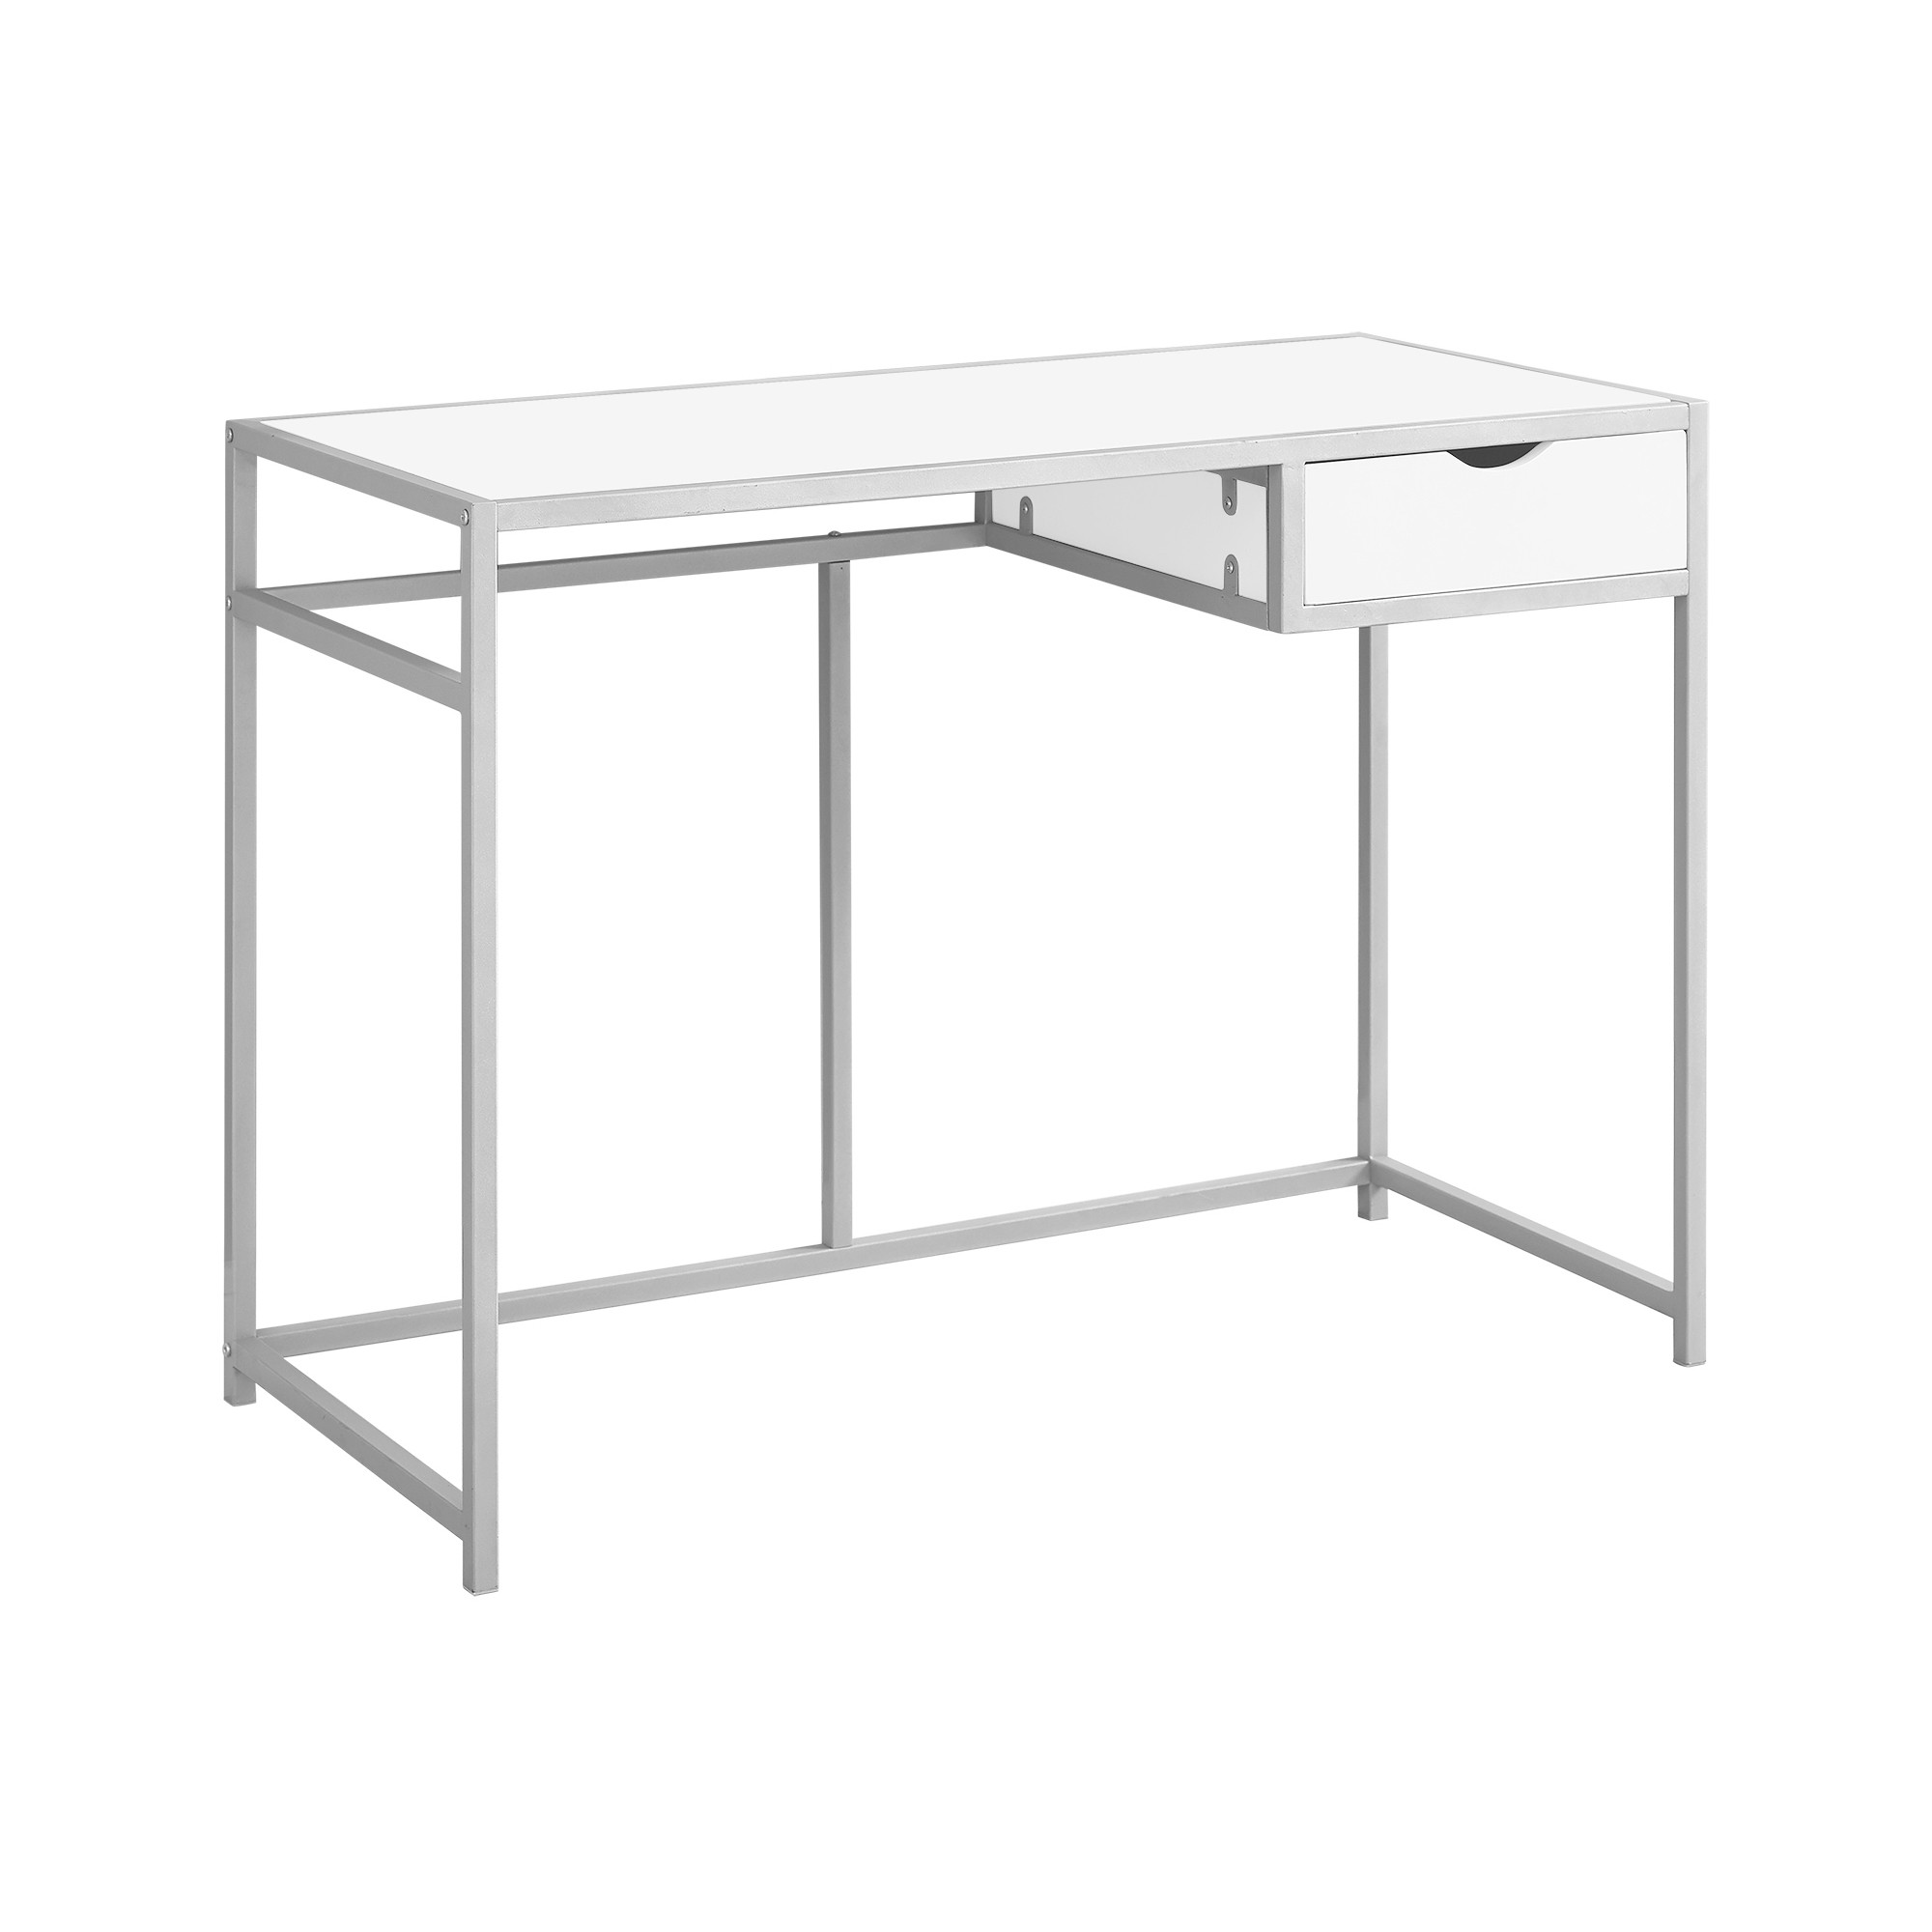 Wood And Metal Writing Desk With Drawers White Everyroom Metal Computer Desk White Computer Desk Contemporary Writing Desk